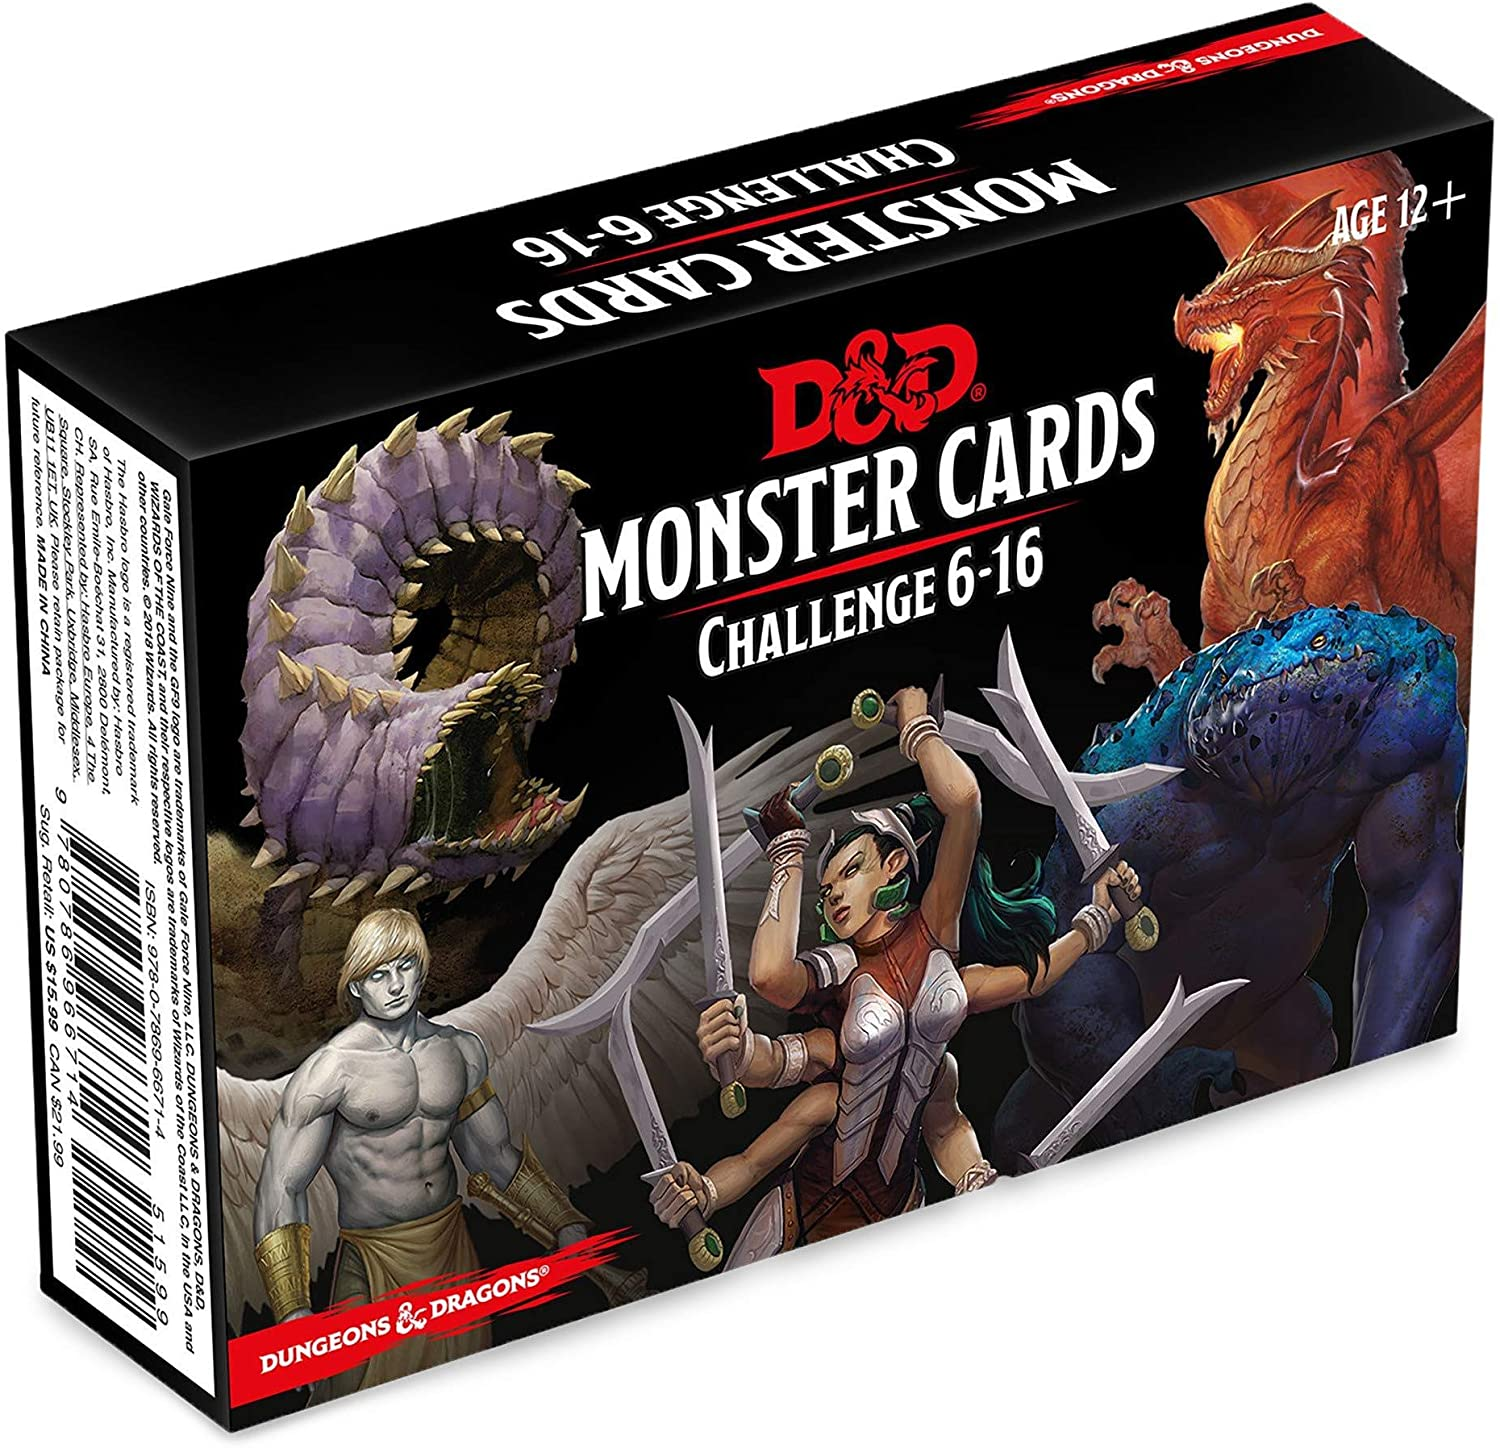 Dungeons & Dragons Monster Cards: Challenge 6-16